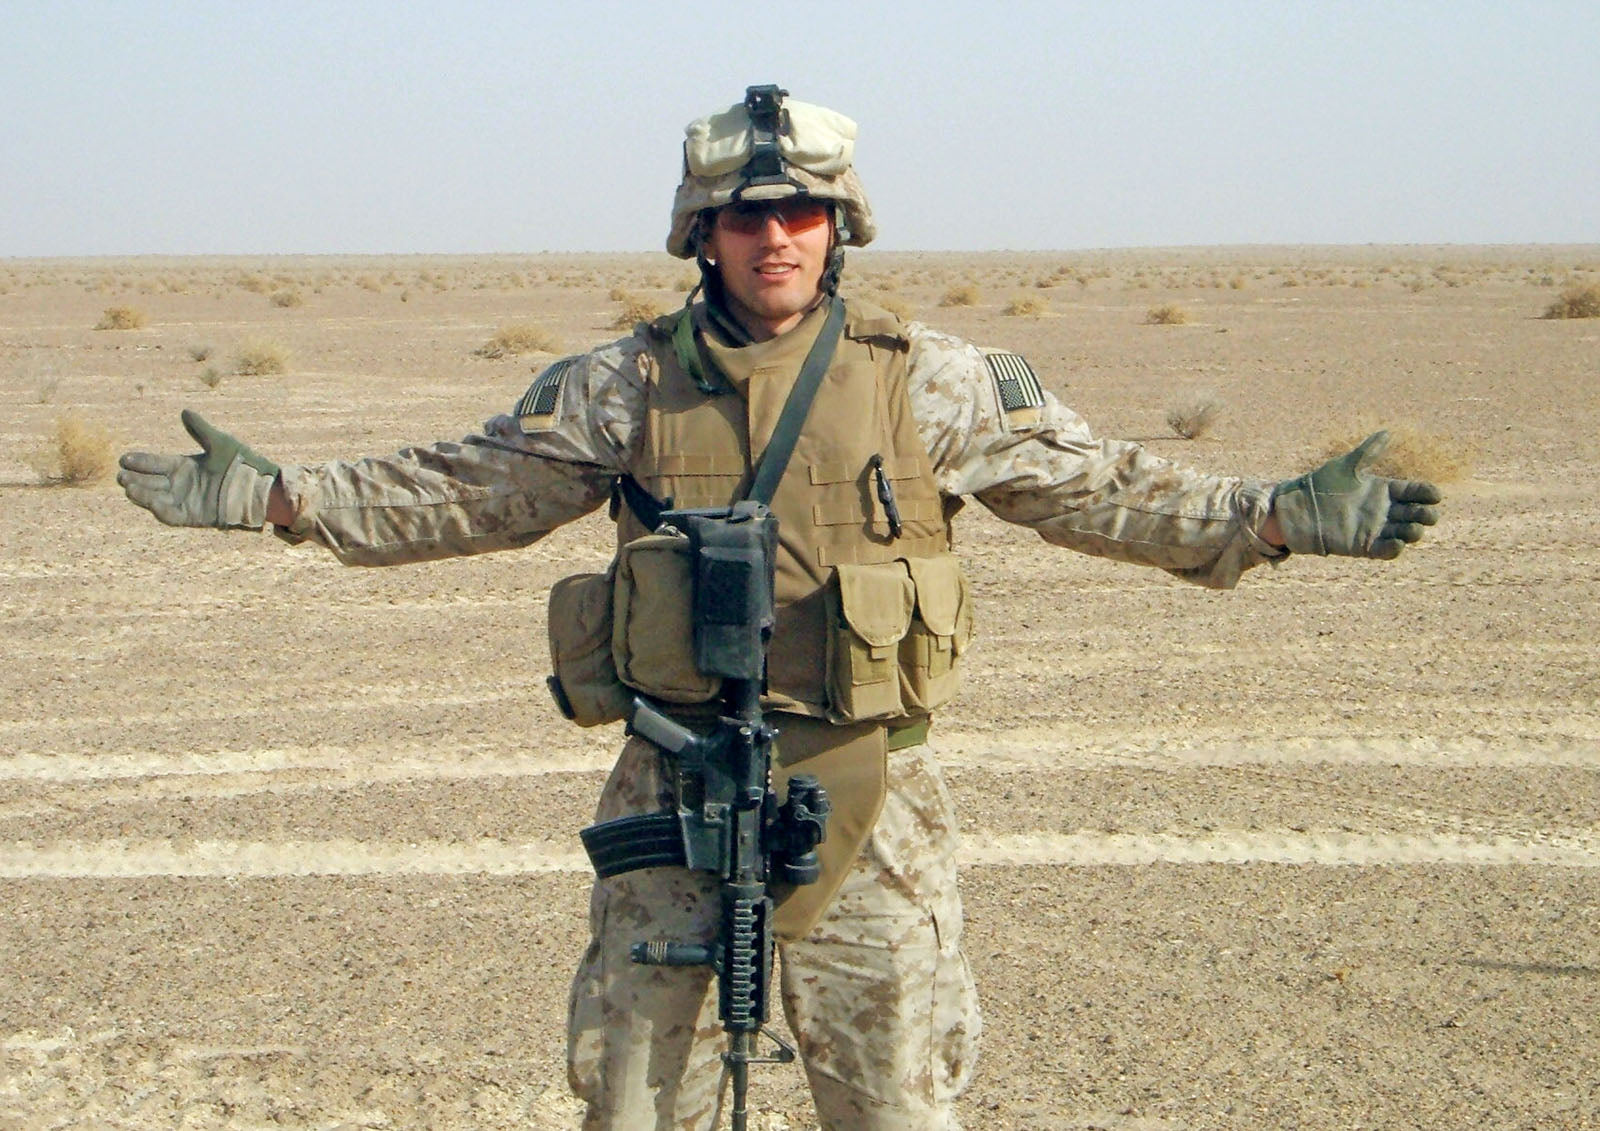 Patriotism Spotlight: Travis Manion and the Travis Manion Foundation